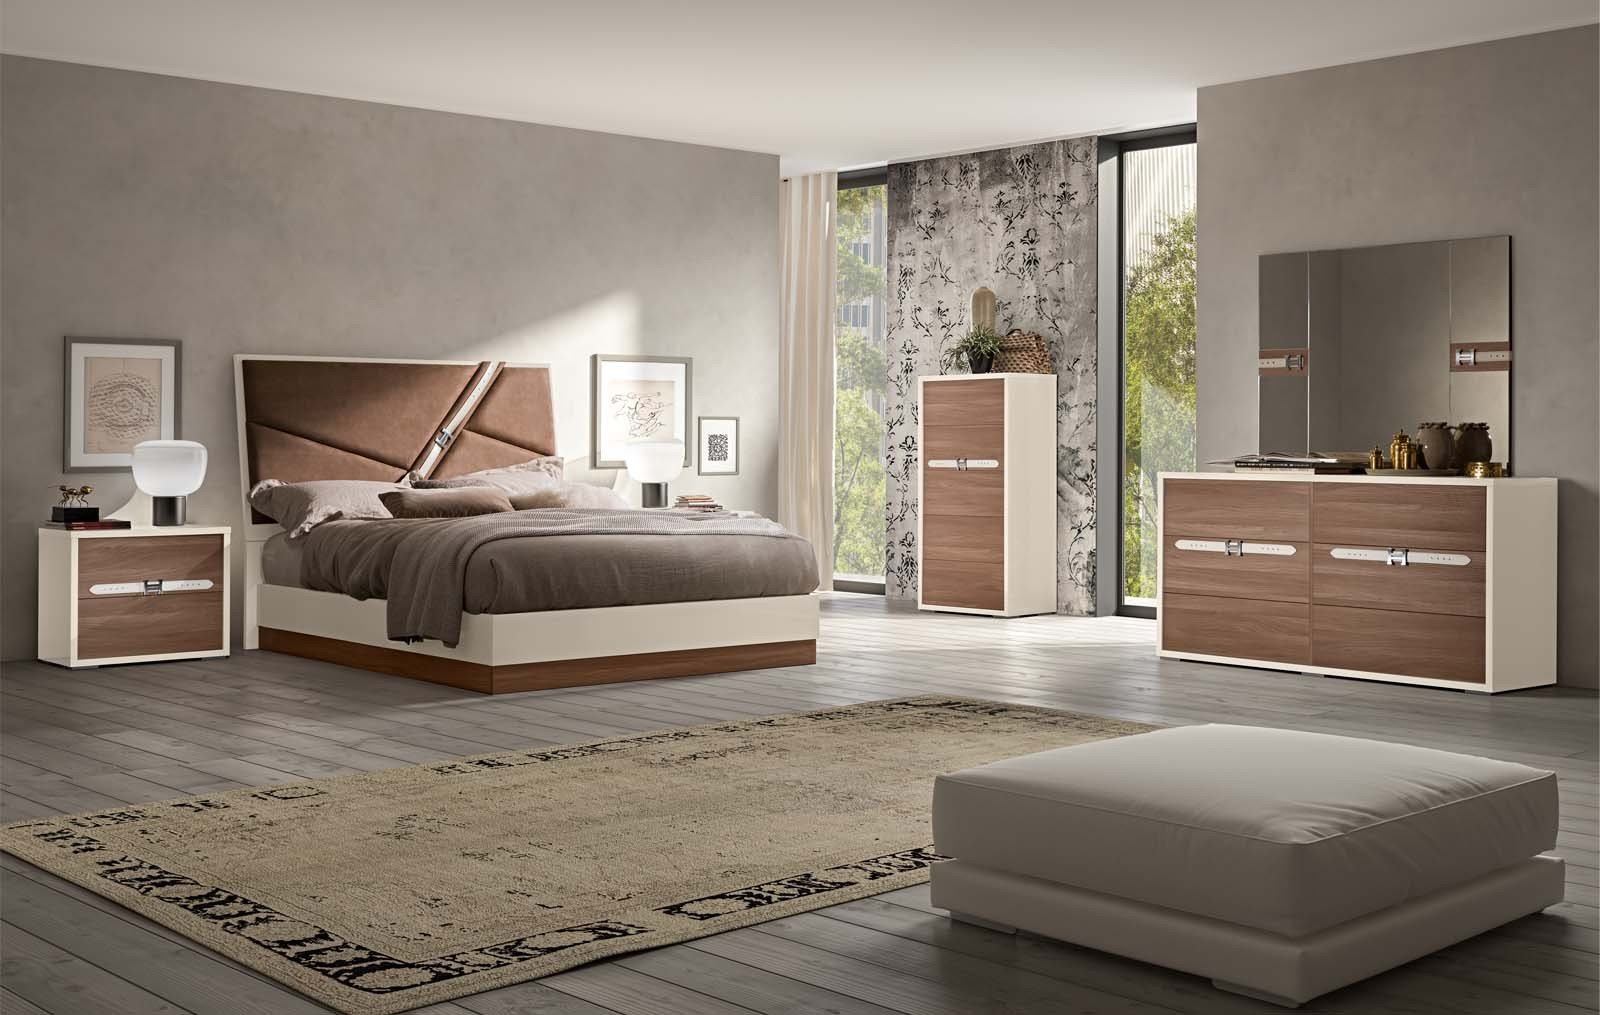 Best Made In Italy Wood Designer Bedroom Furniture Sets With With Pictures